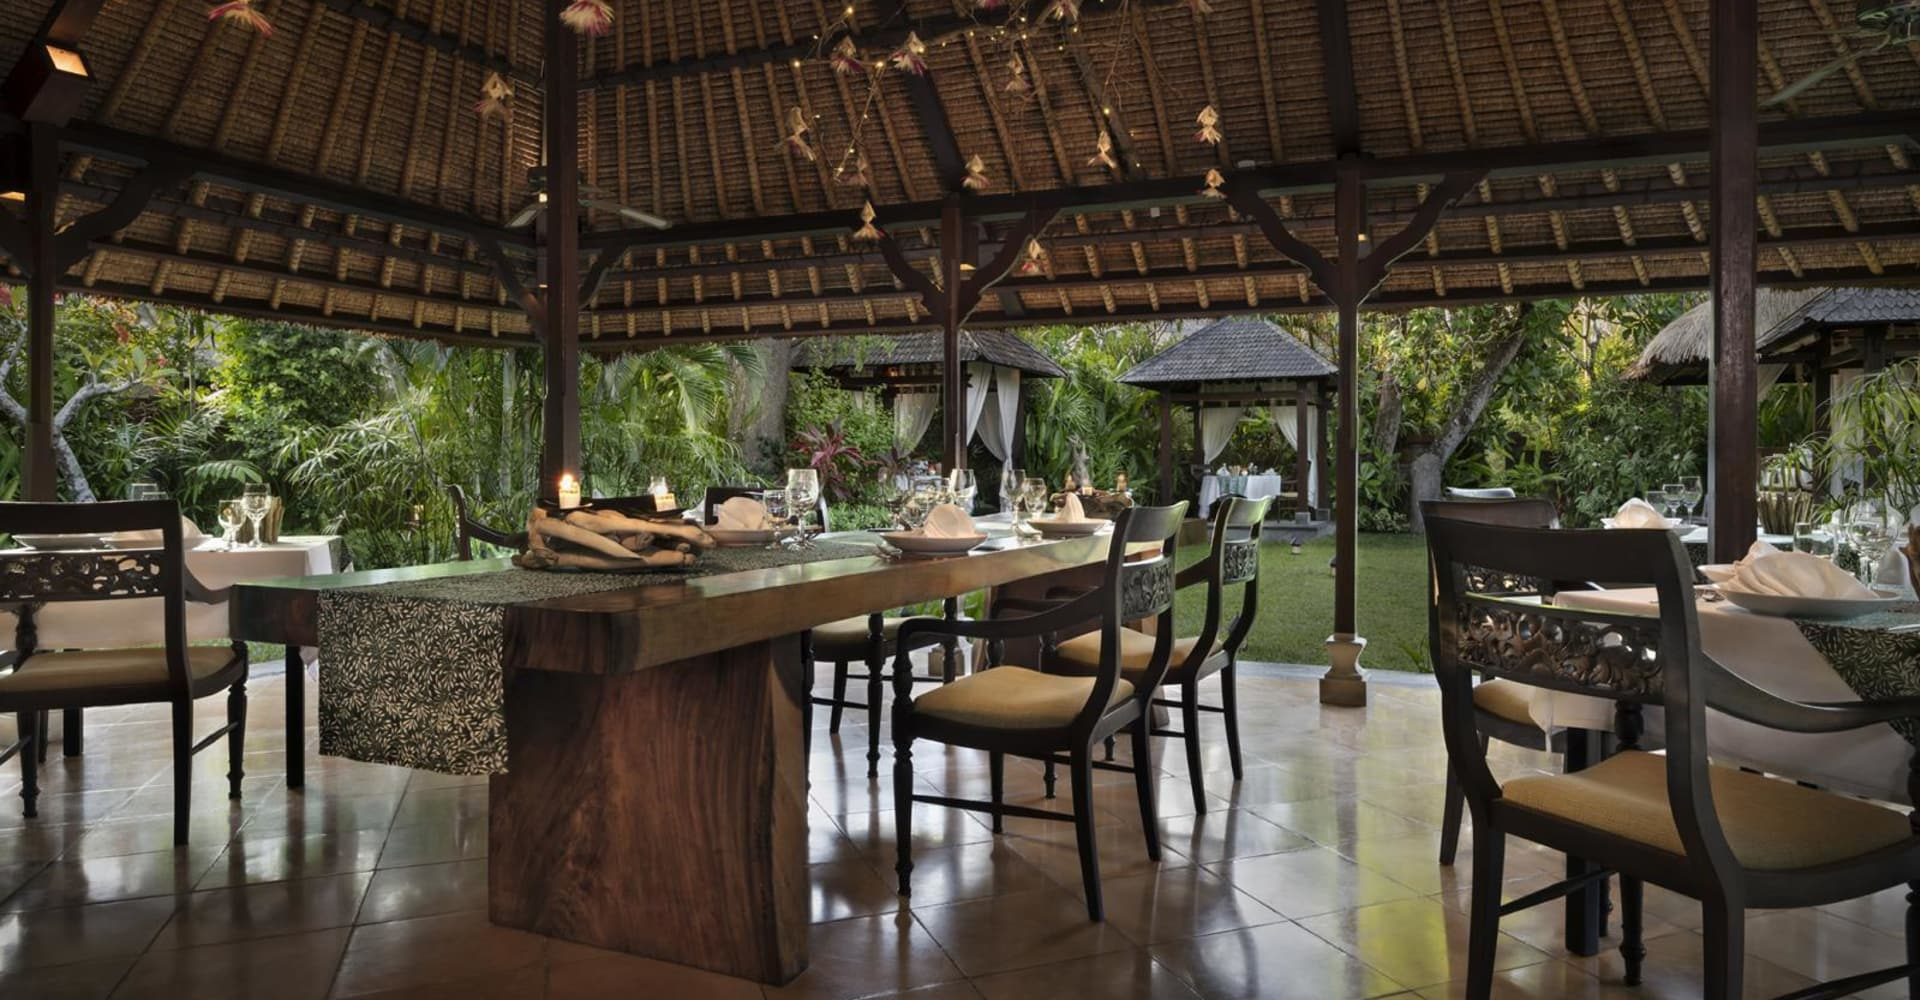 The Jahe Restaurant - The Pavilions Bali